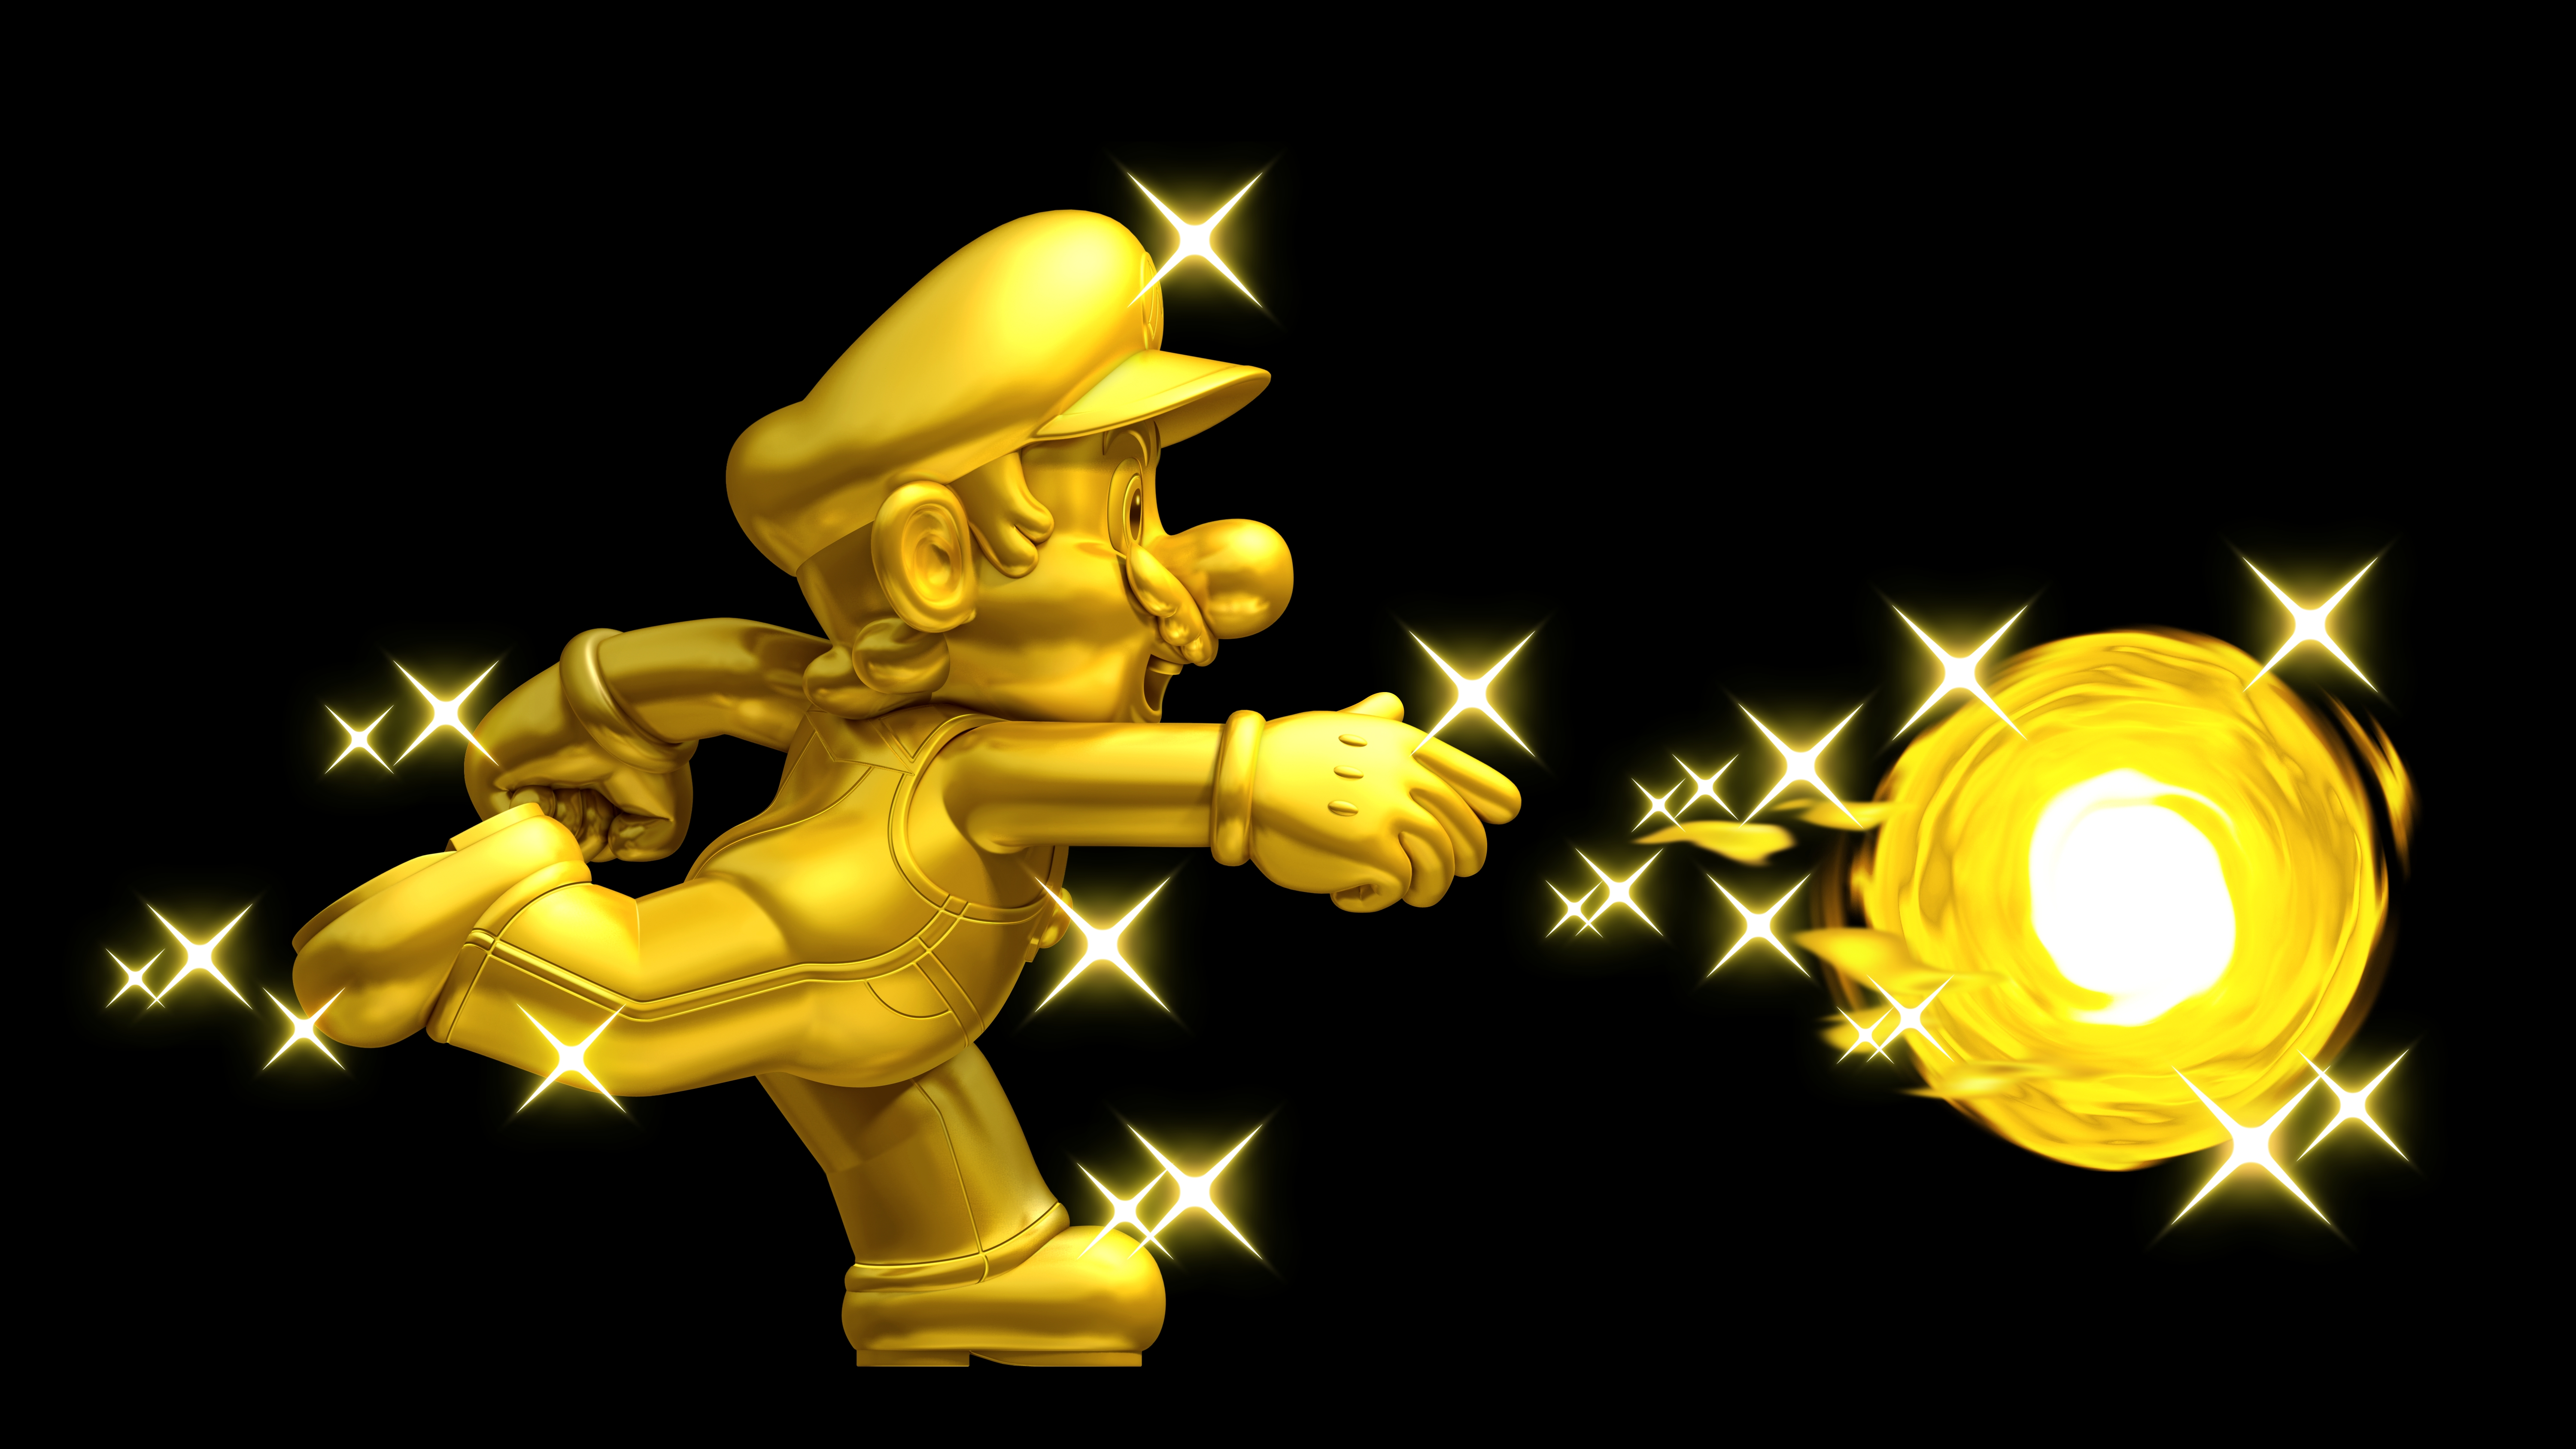 Call Of Duty Black Ops Wallpaper Super Mario Bros Wallpapers Pictures Images